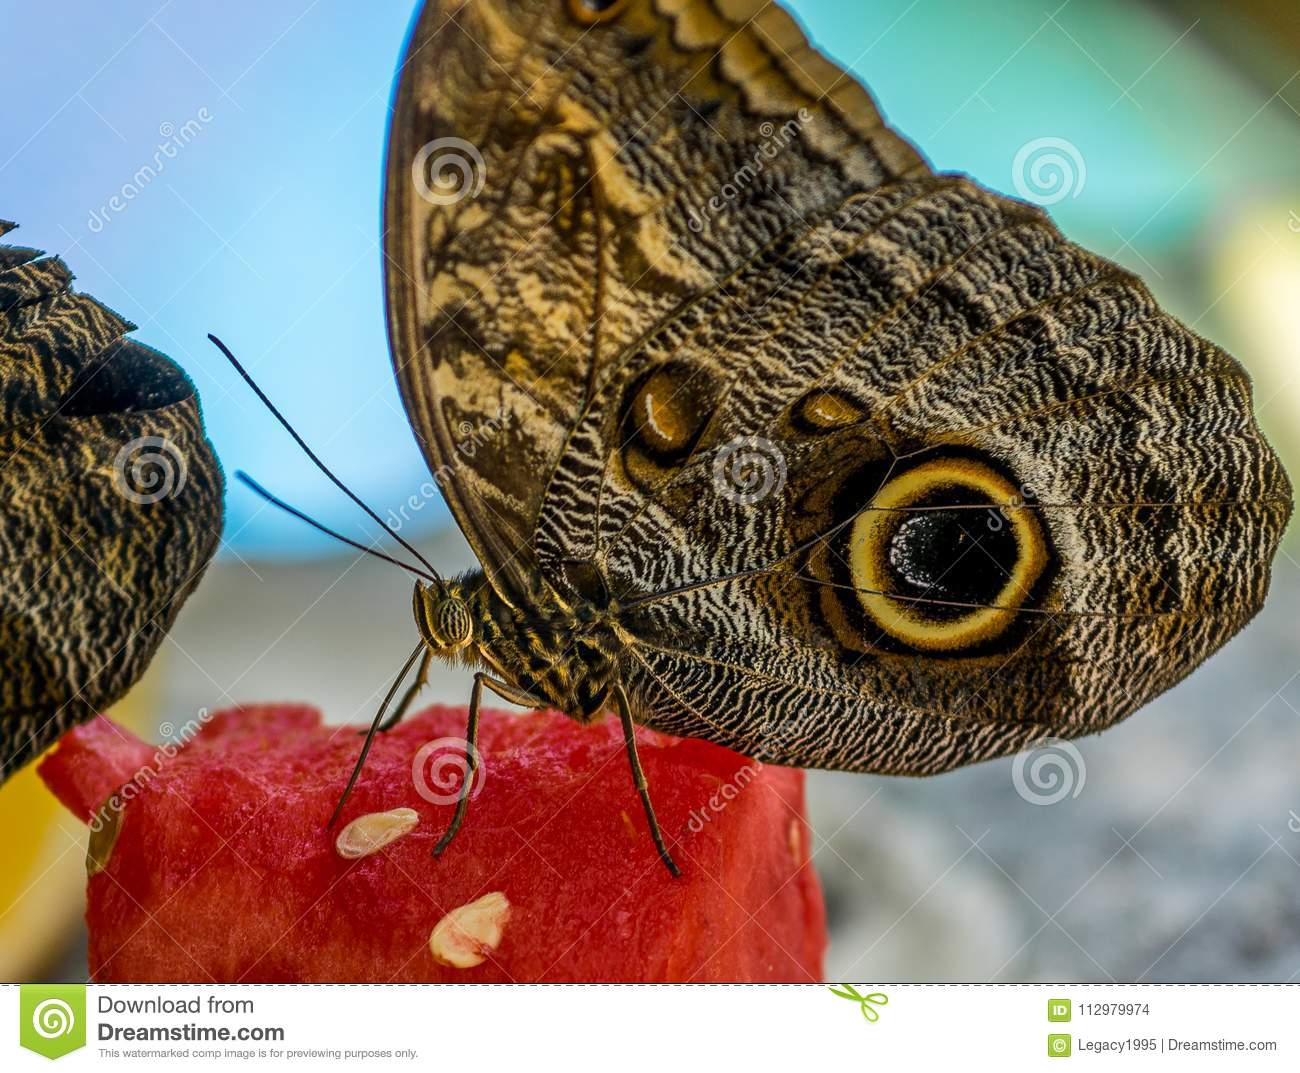 Tropical Butterfly Feasting Off Watermelon